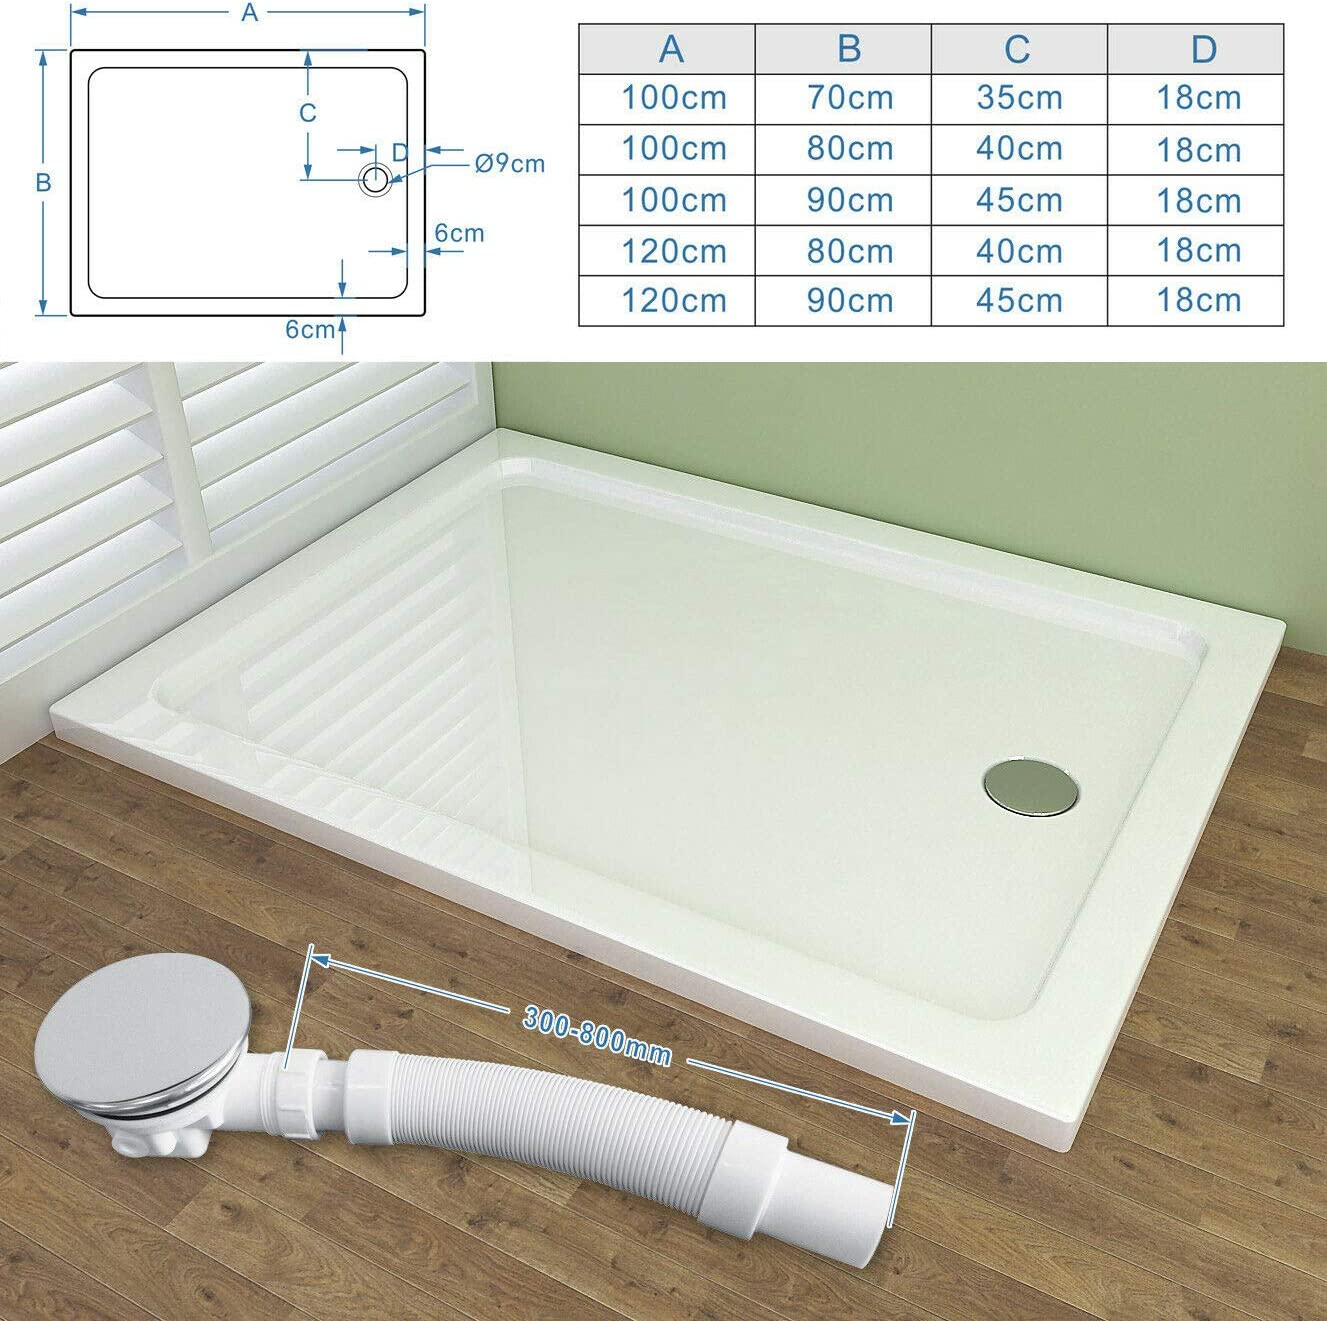 High Flow Shower Trap Chrome Waste Trap 90mm for Shower Tray with 80cm Flexible Connector Pipe